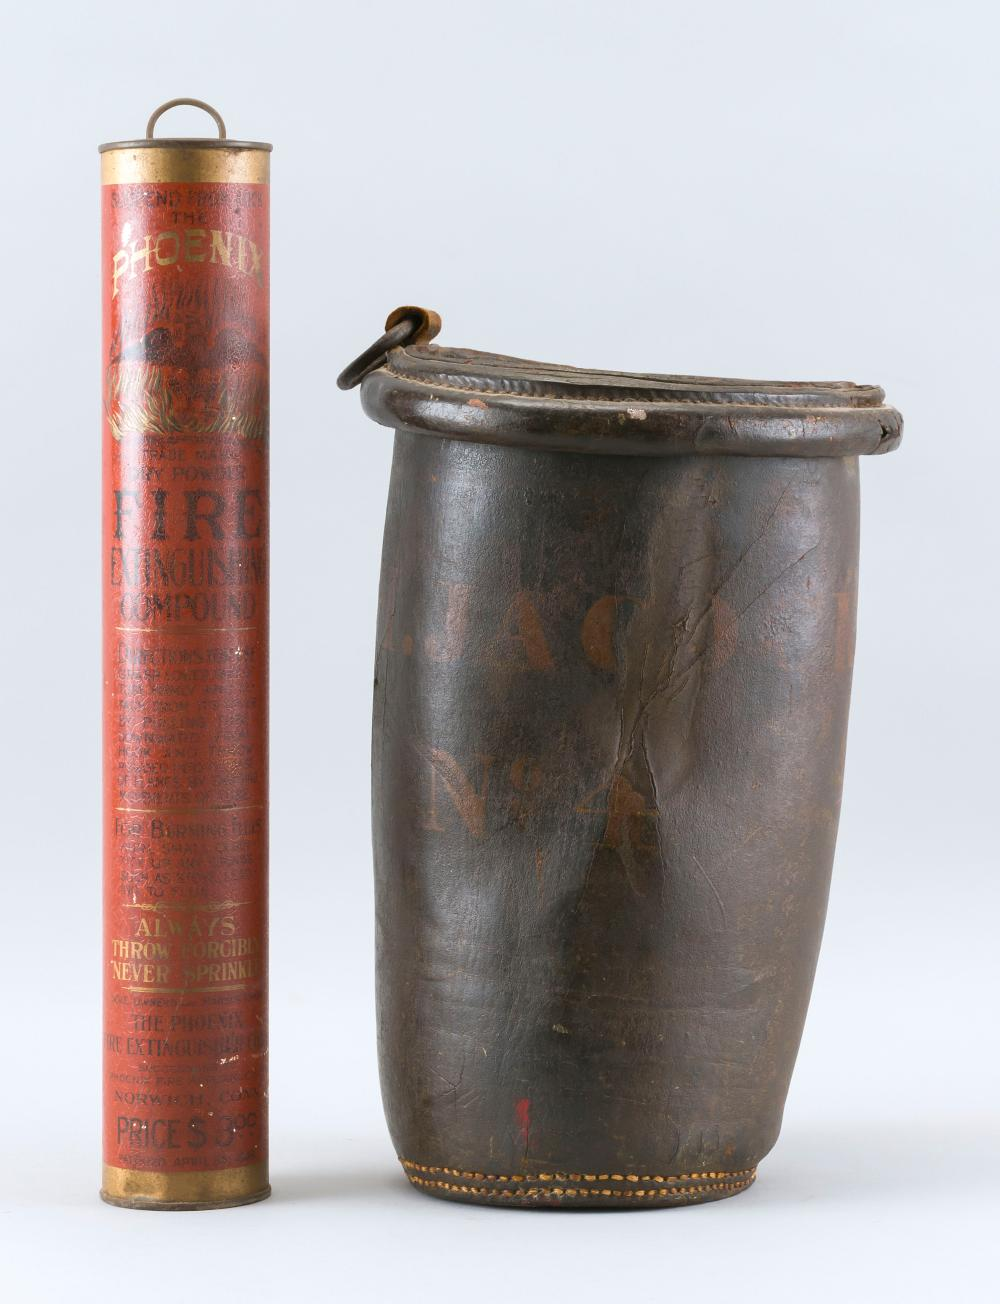 """TWO FIRE-RELATED ITEMS A leather fire bucket with faint markings, height 12.5"""", and a Phoenix Dry Powder Fire Extinguishing Compound..."""